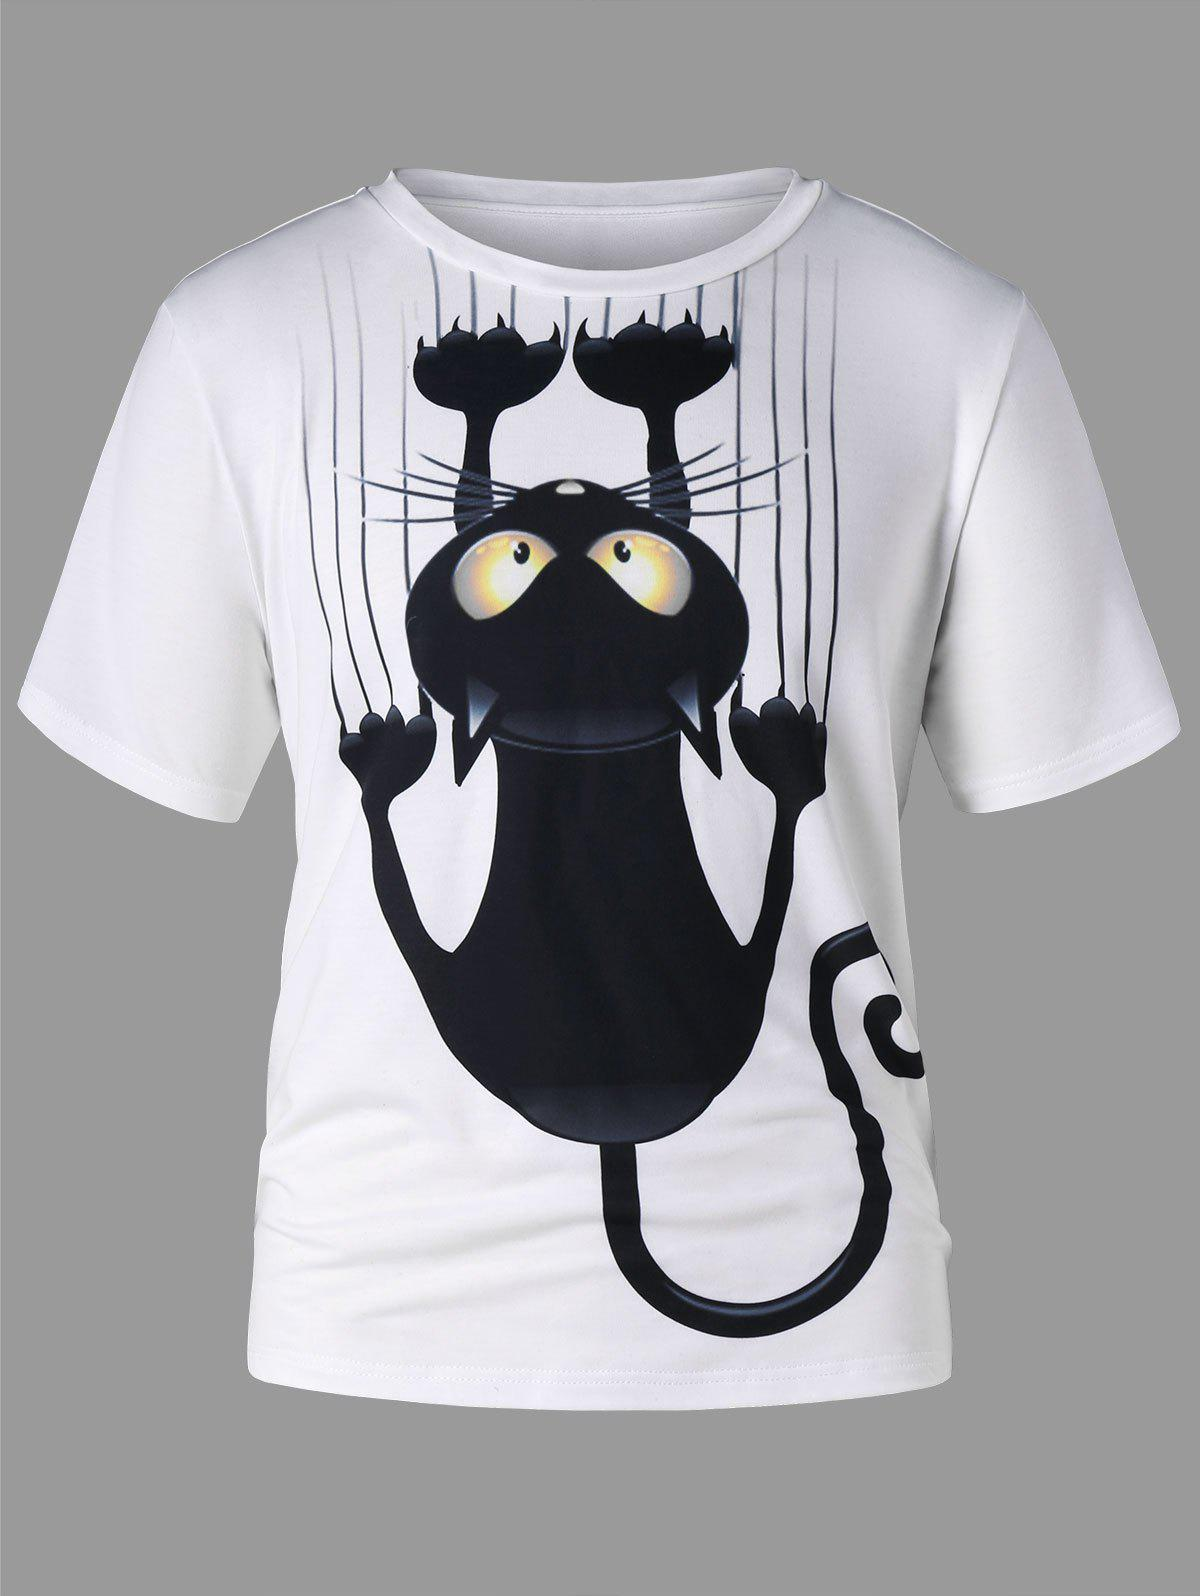 Short Sleeve Black Cat T-shirt - WHITE 2XL